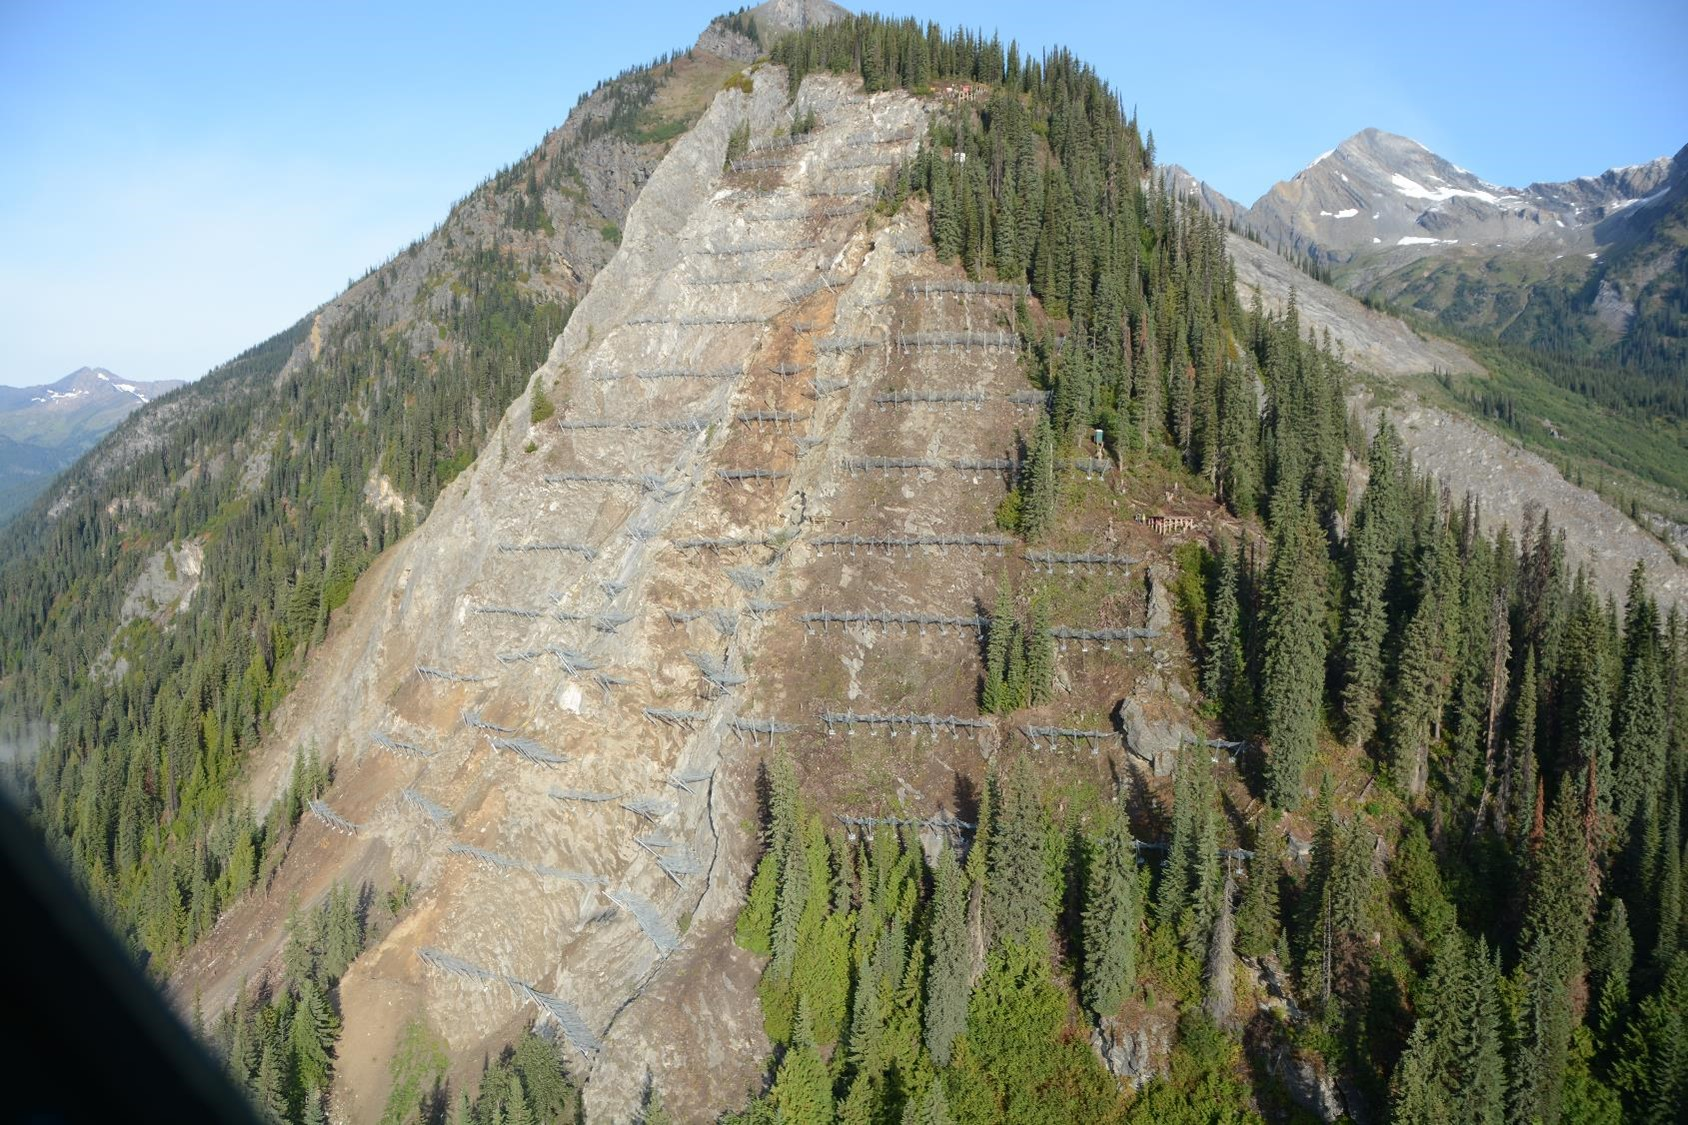 Avalanche Protection and Engineering